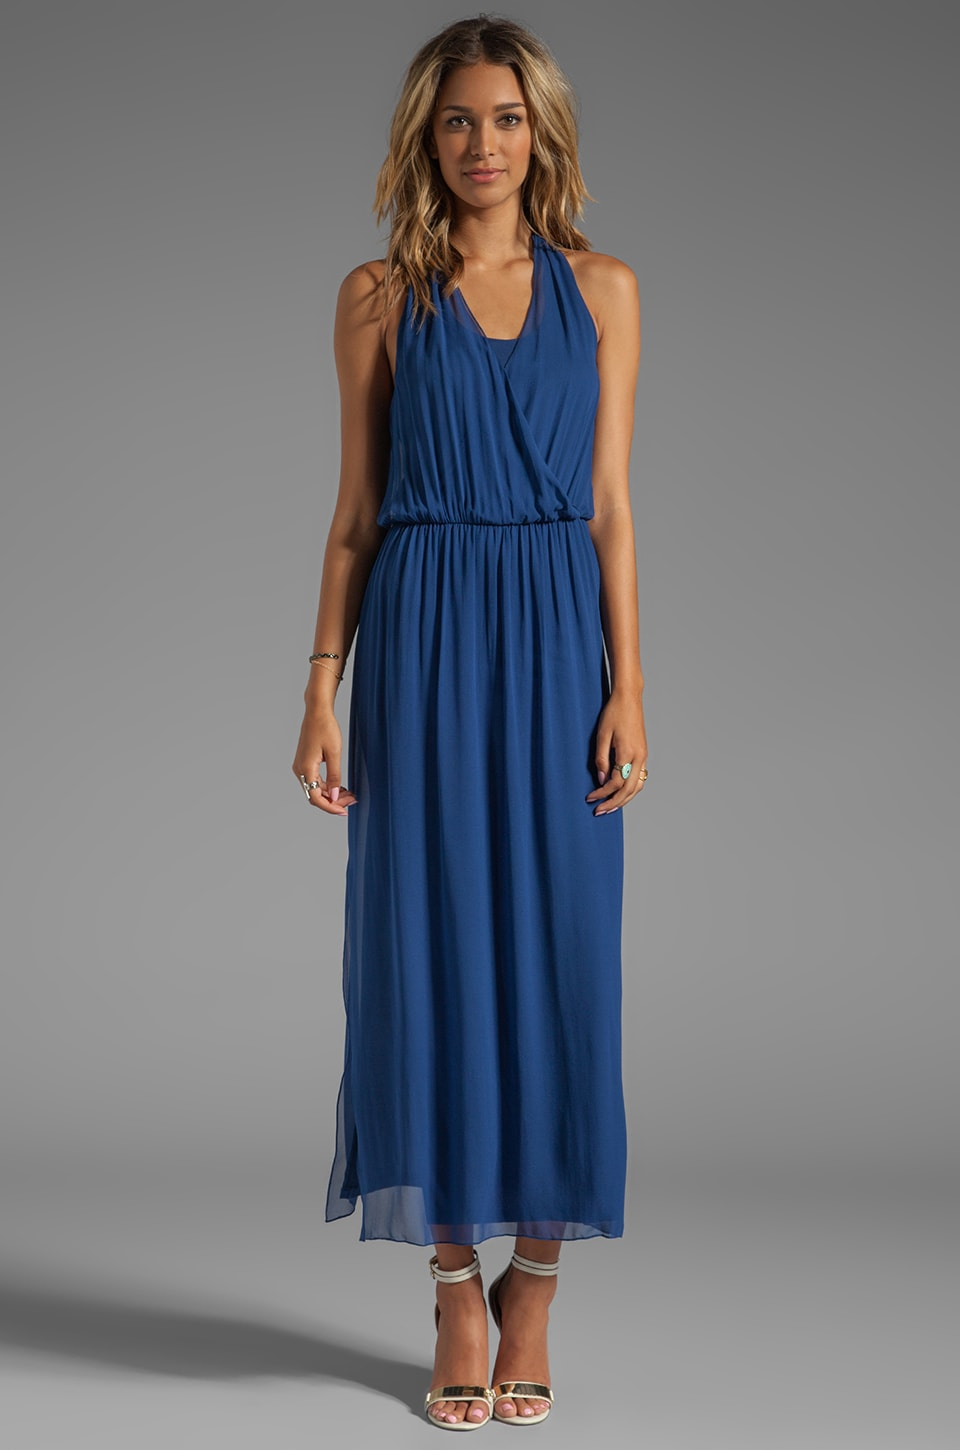 Alice + Olivia Mora Wrap-Front Halter Dress in Navy